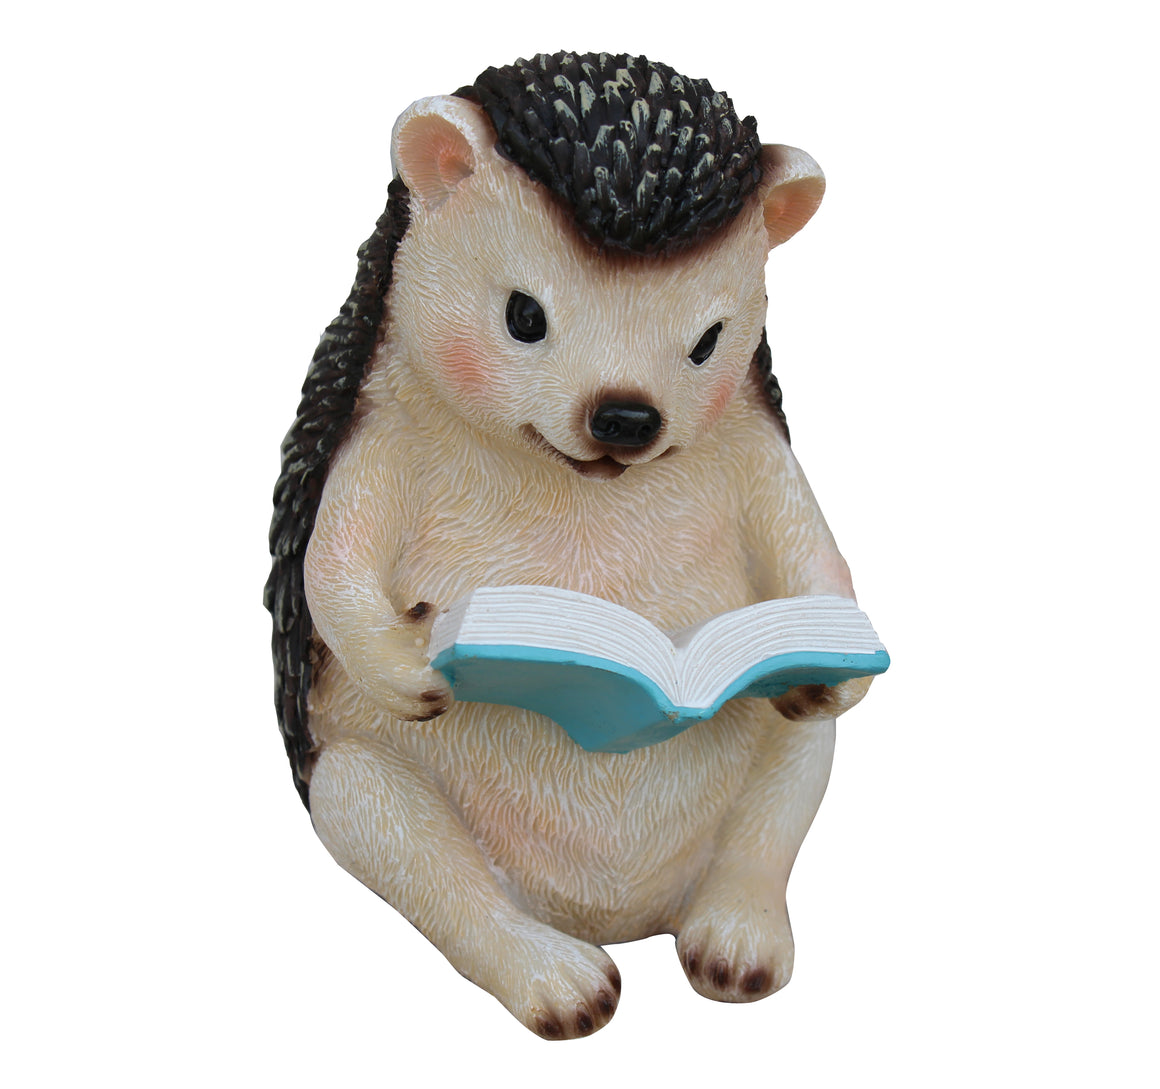 Hedgehog Reading Book Figurine Ornament, Terrace Miniature Statue, Cute Porcupine Figure, Outdoor Decor, Lawn Statue. DM423A